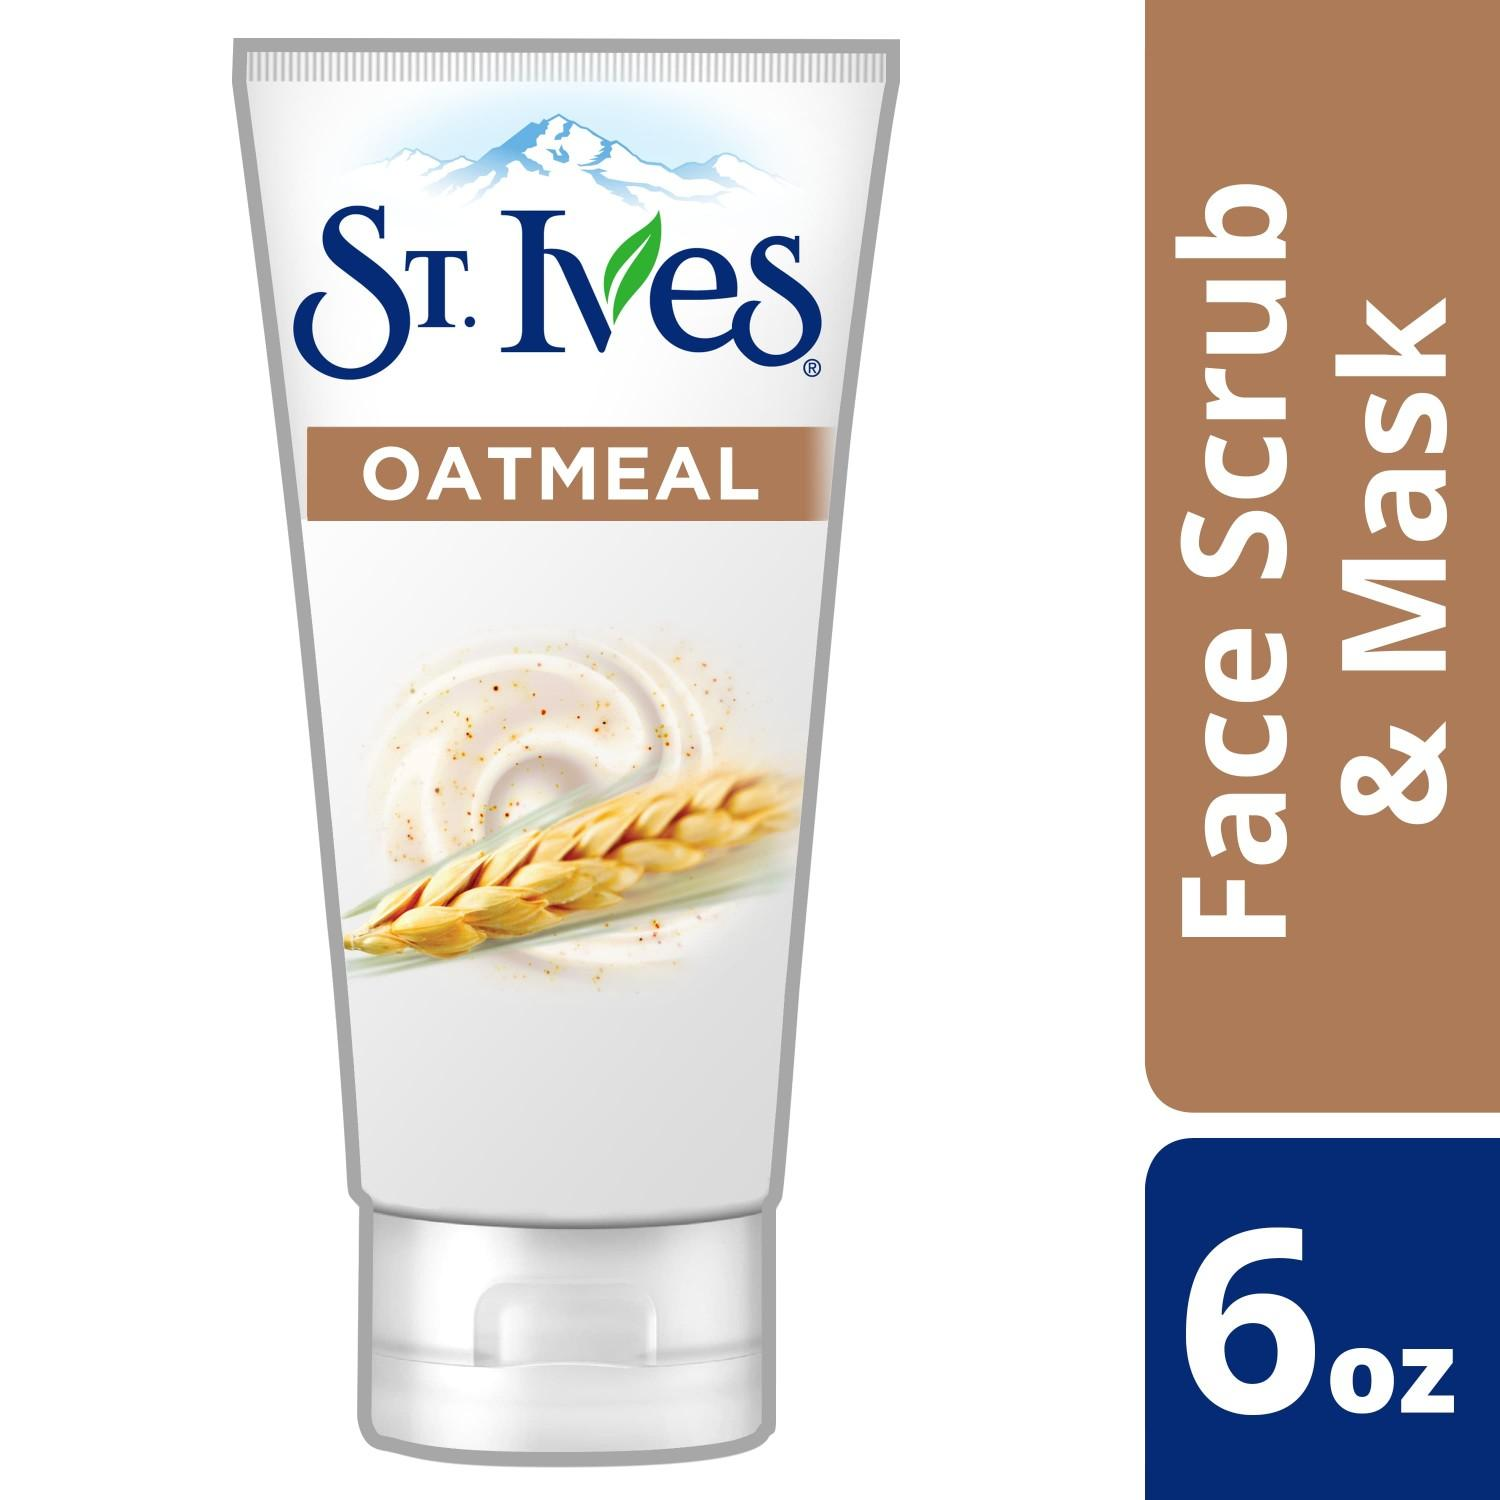 St. Ives Face Scrub Gentle Smoothing Oatmeal Scrub and Mask 6oz